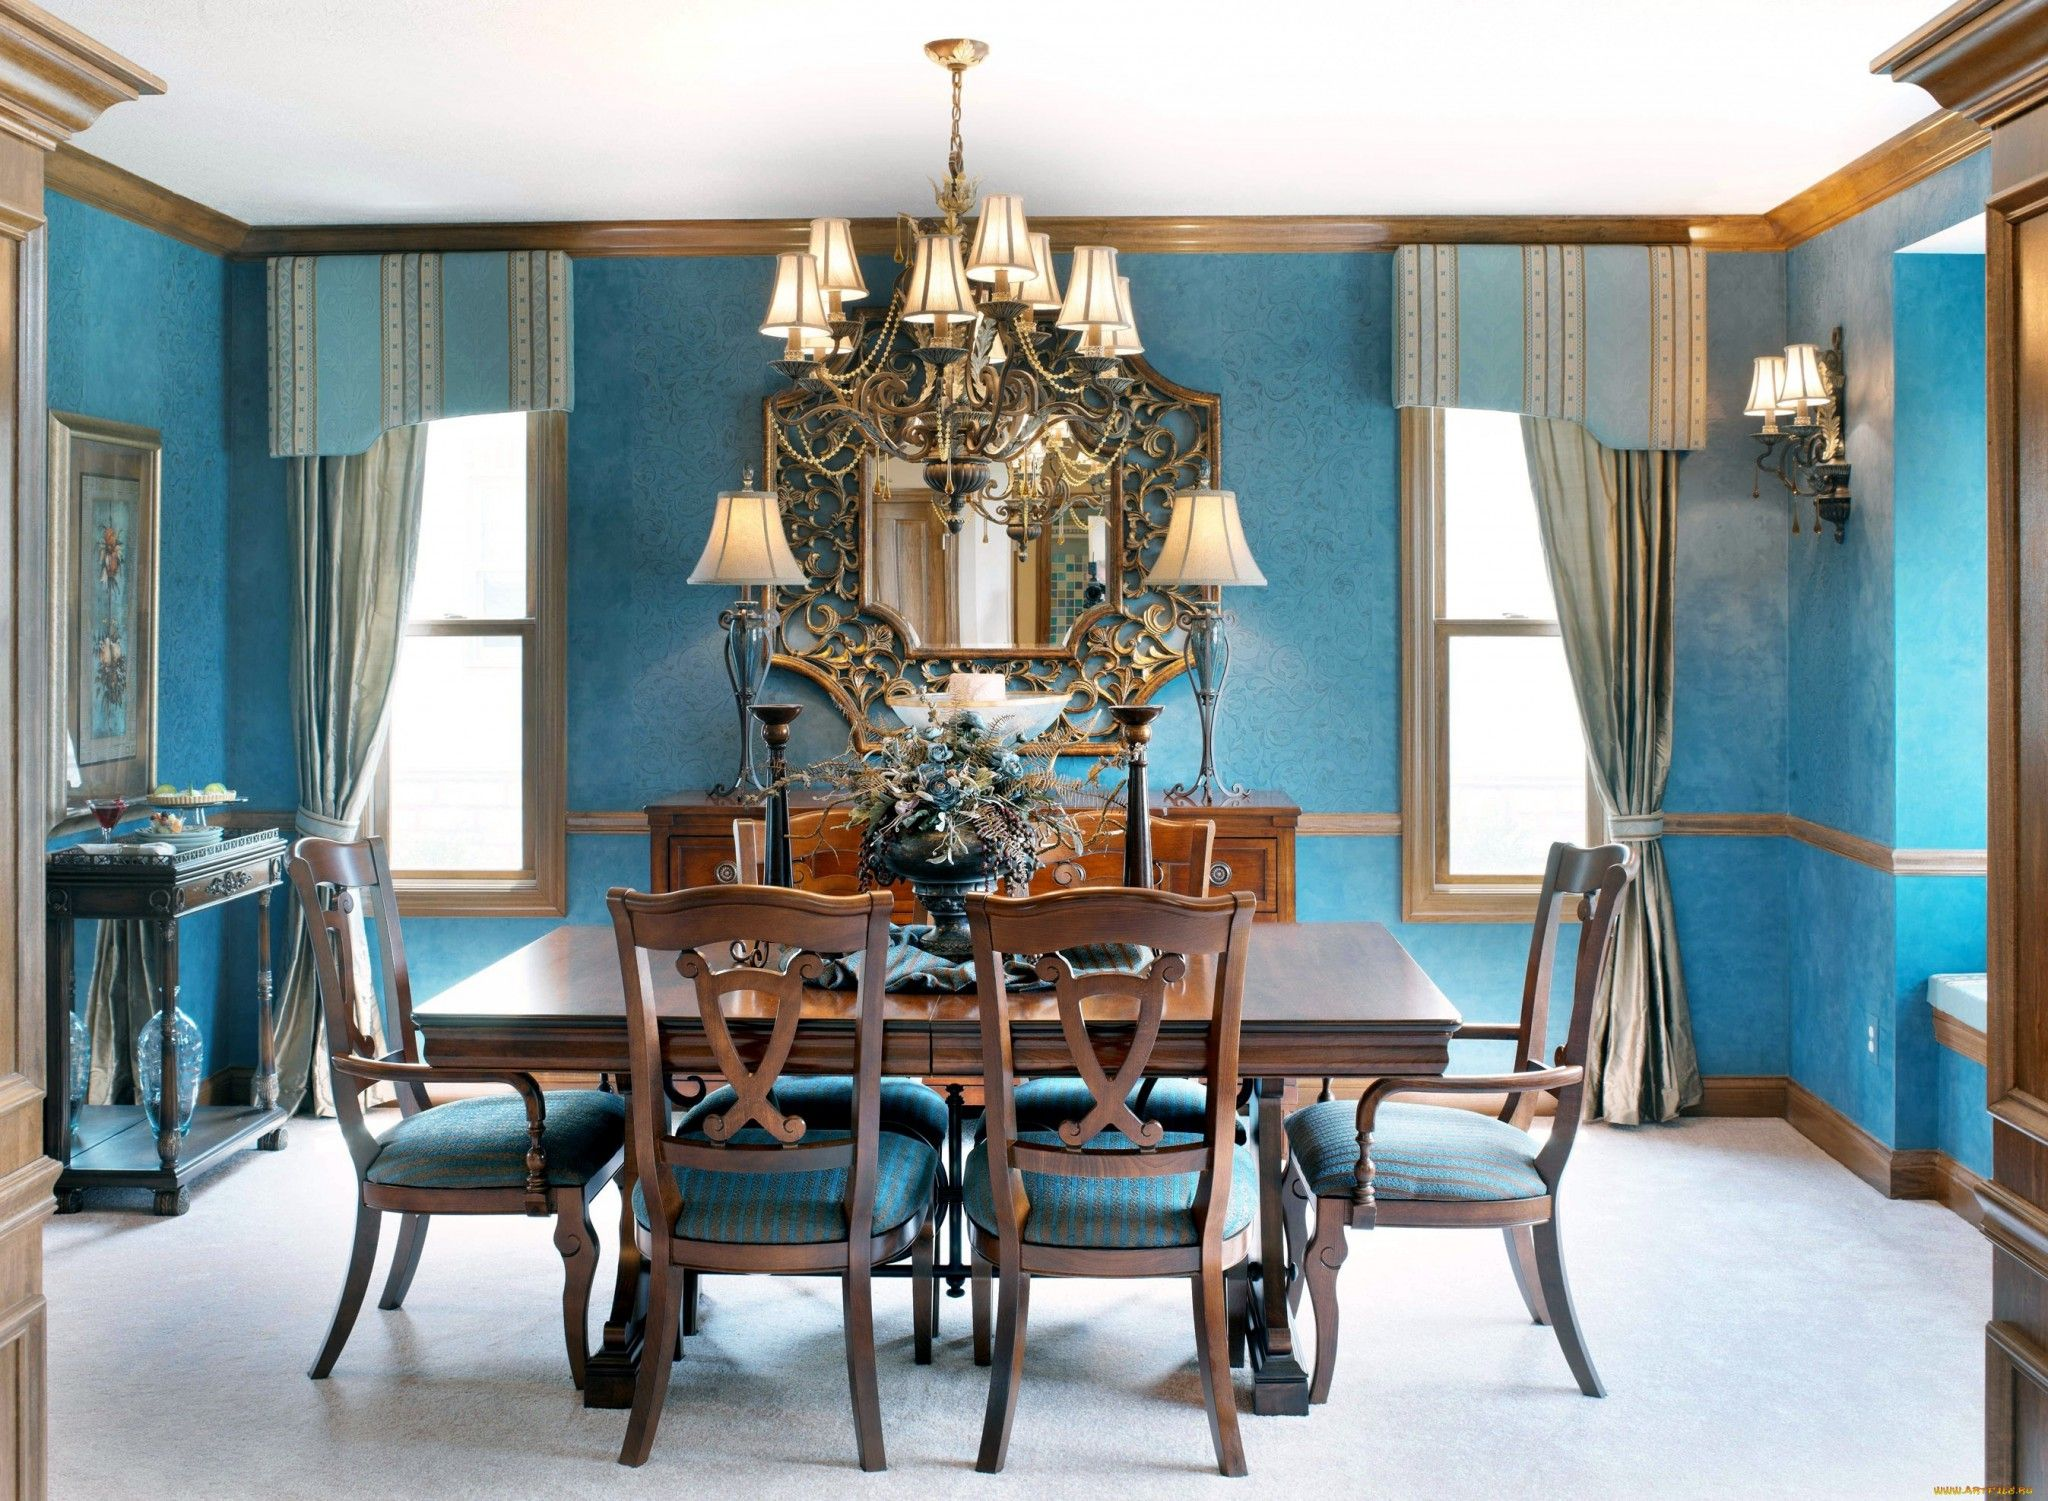 Blue Interior Of The Classic Dining Room With Chandelier Wooden Furniture